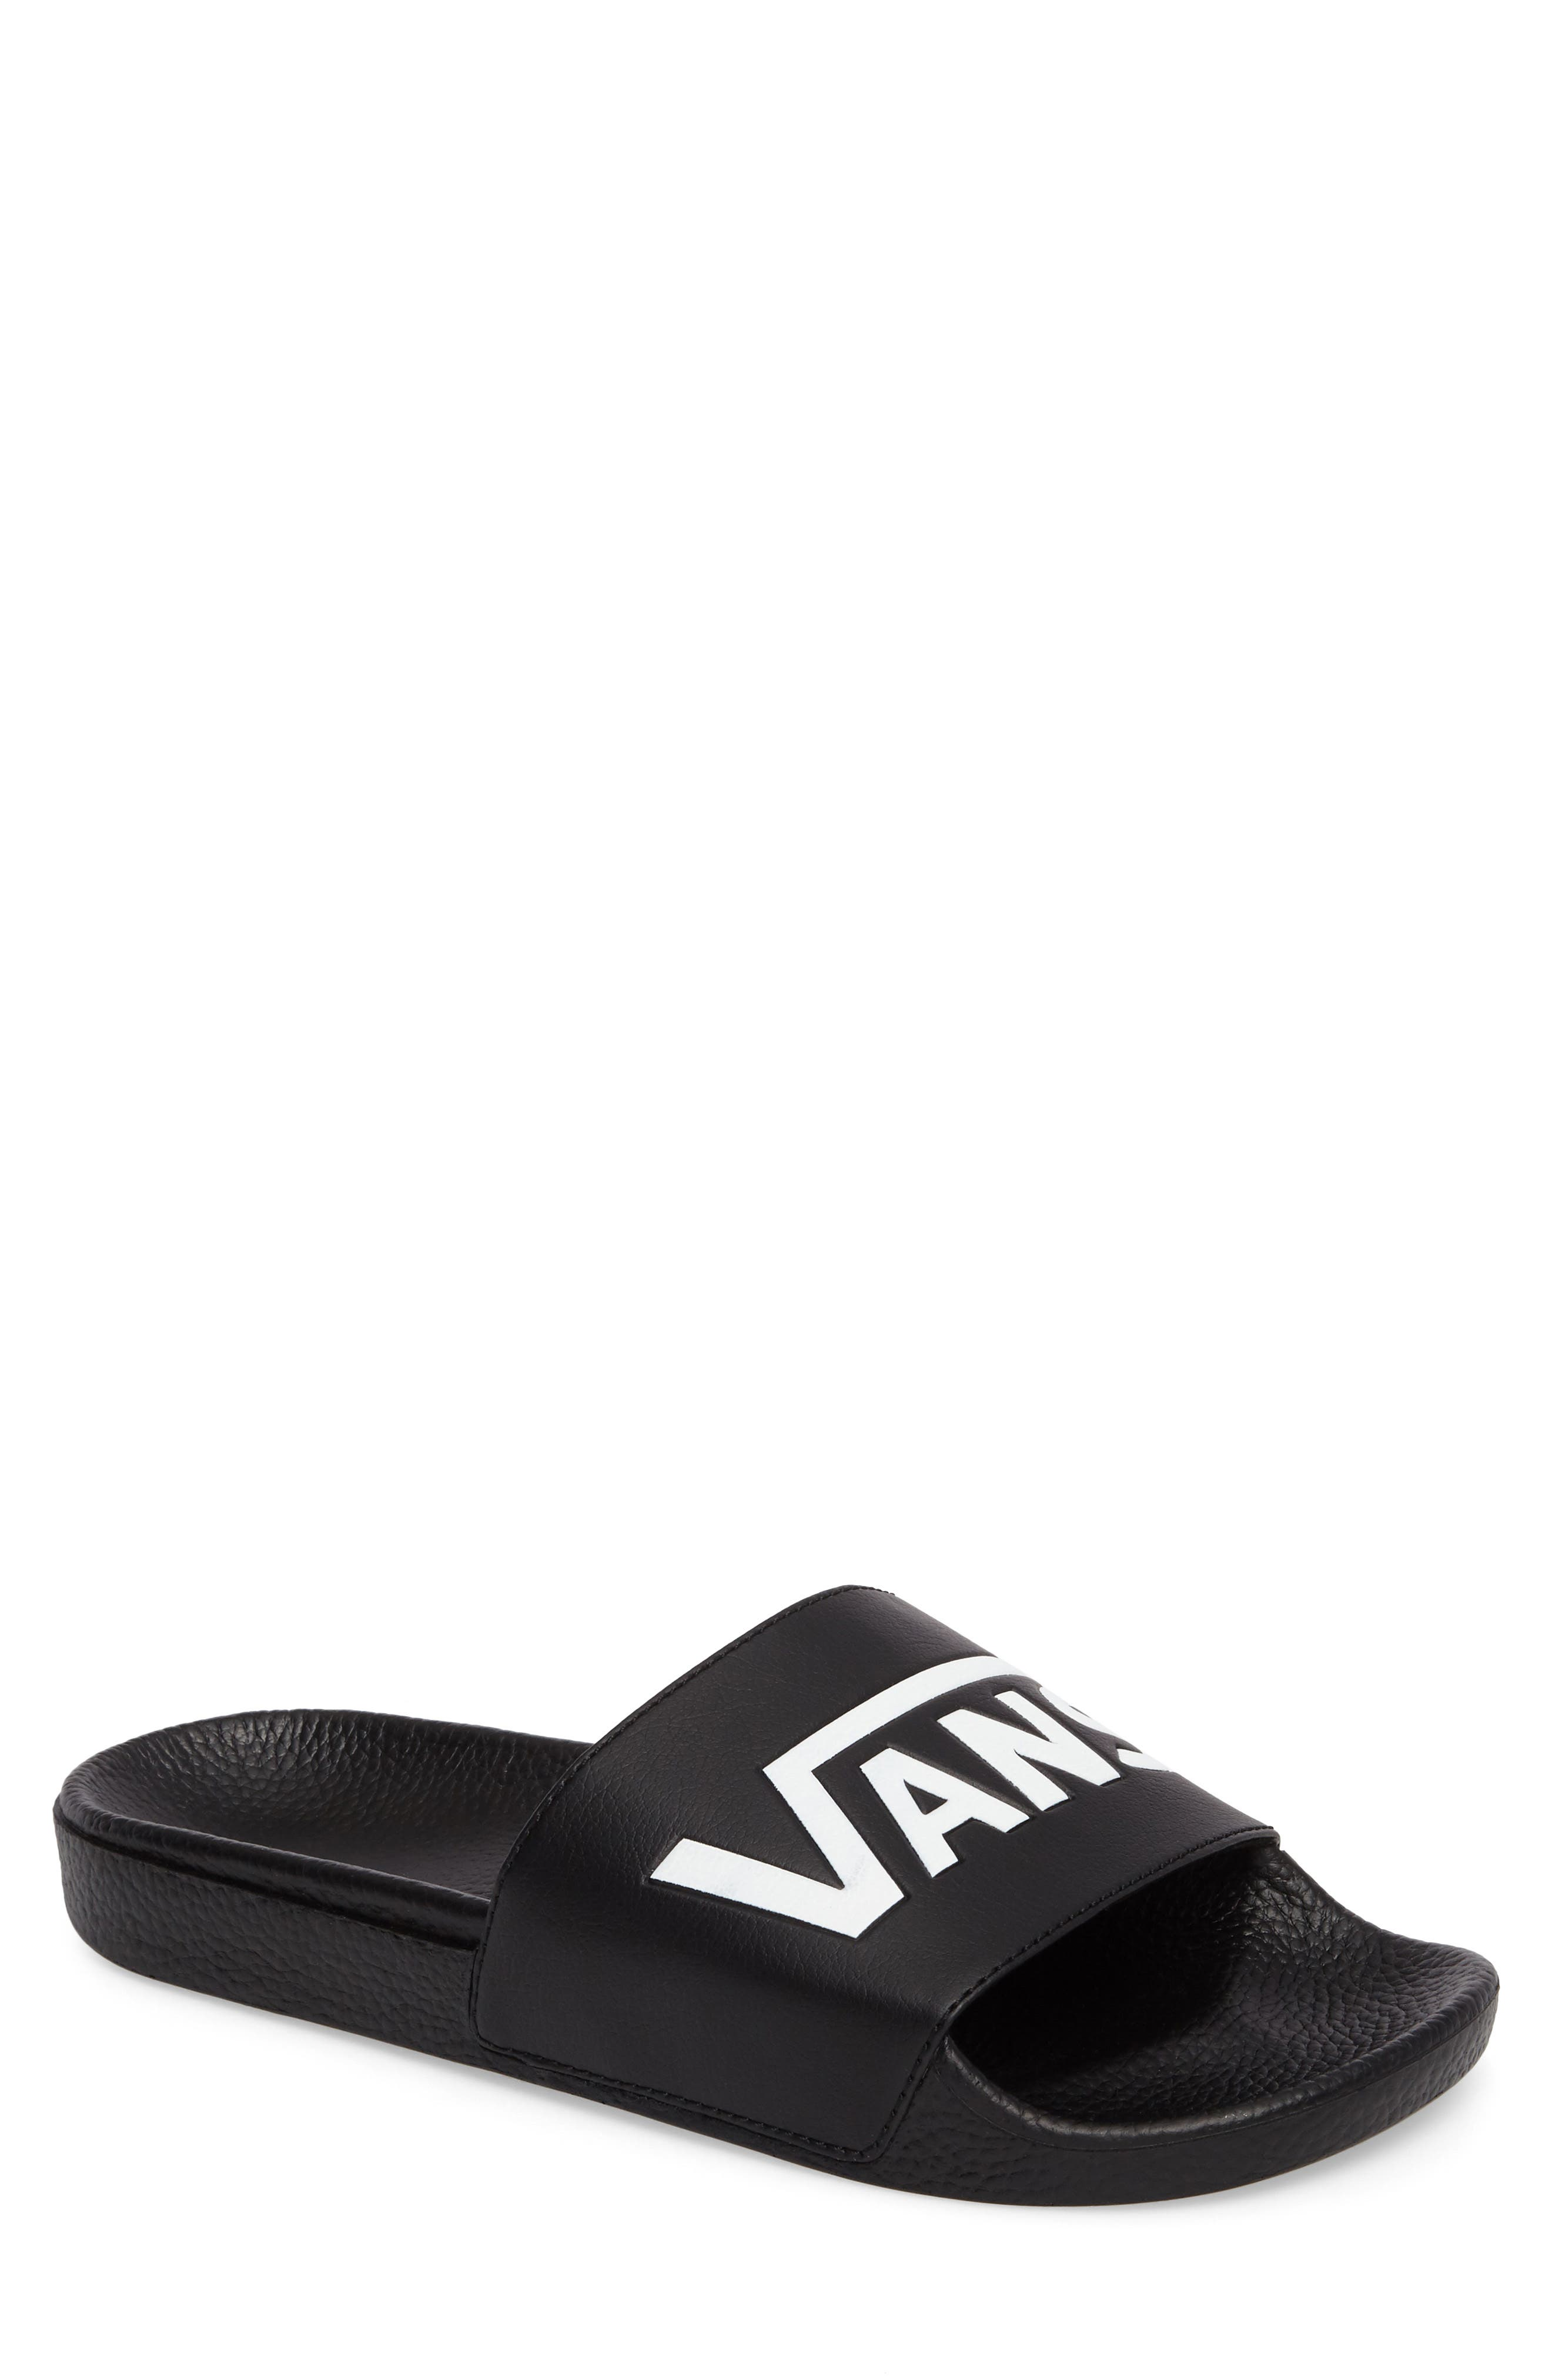 Vans Slide-On Sandal (Men)